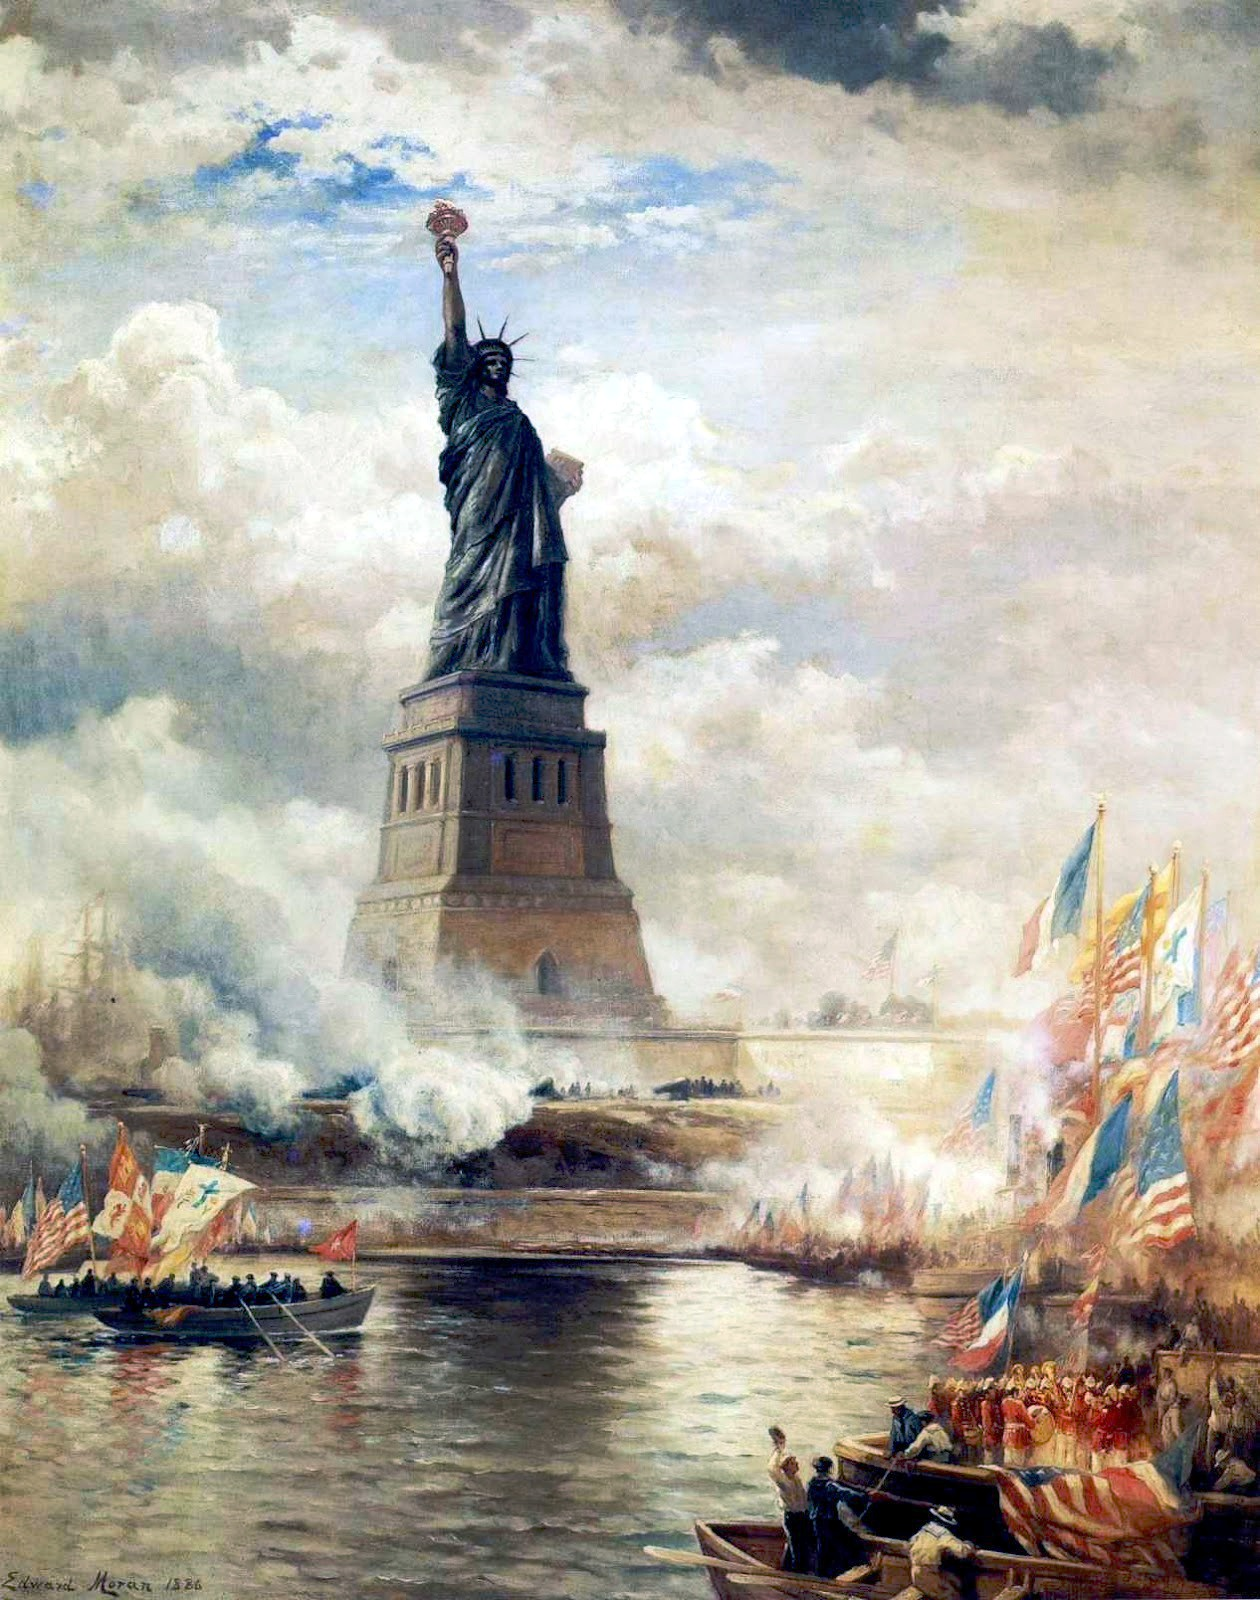 Unveiling The Statue of Liberty Enlightening the World by Edward Moran